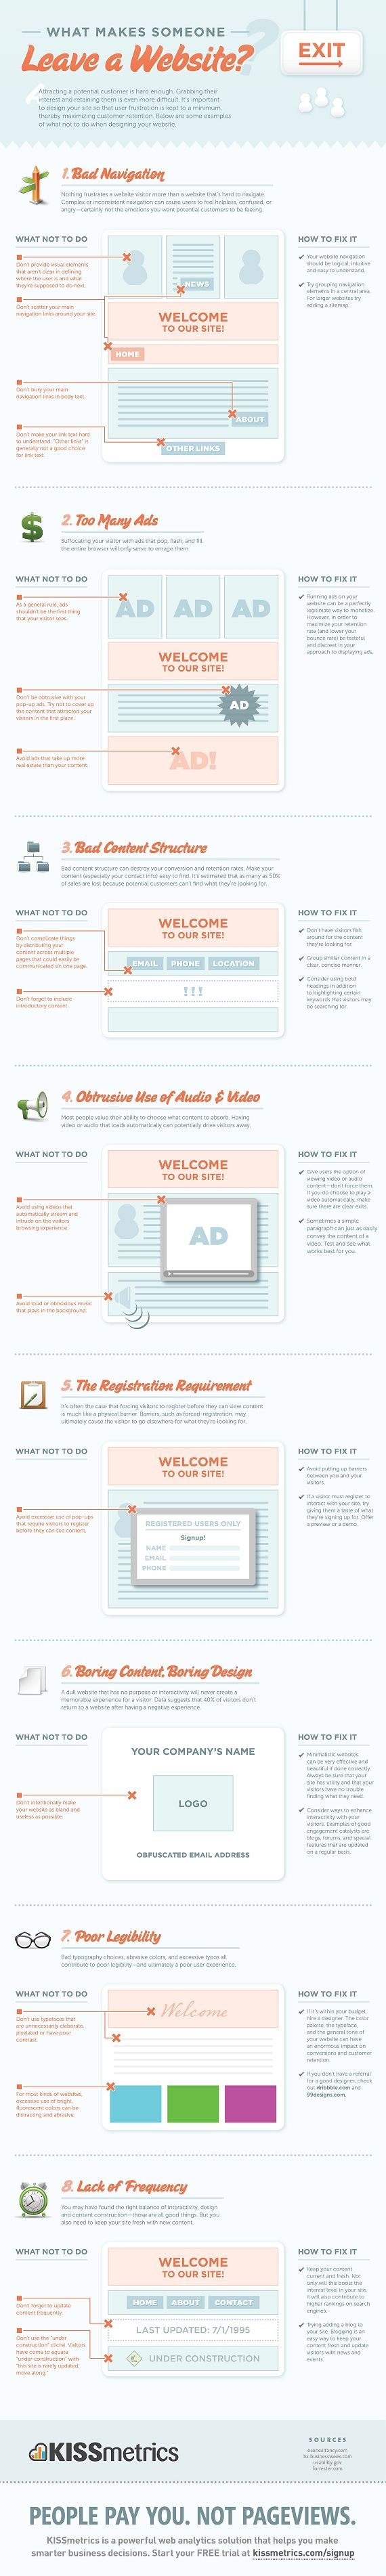 What Makes Someone Leave A Website? (infographic)